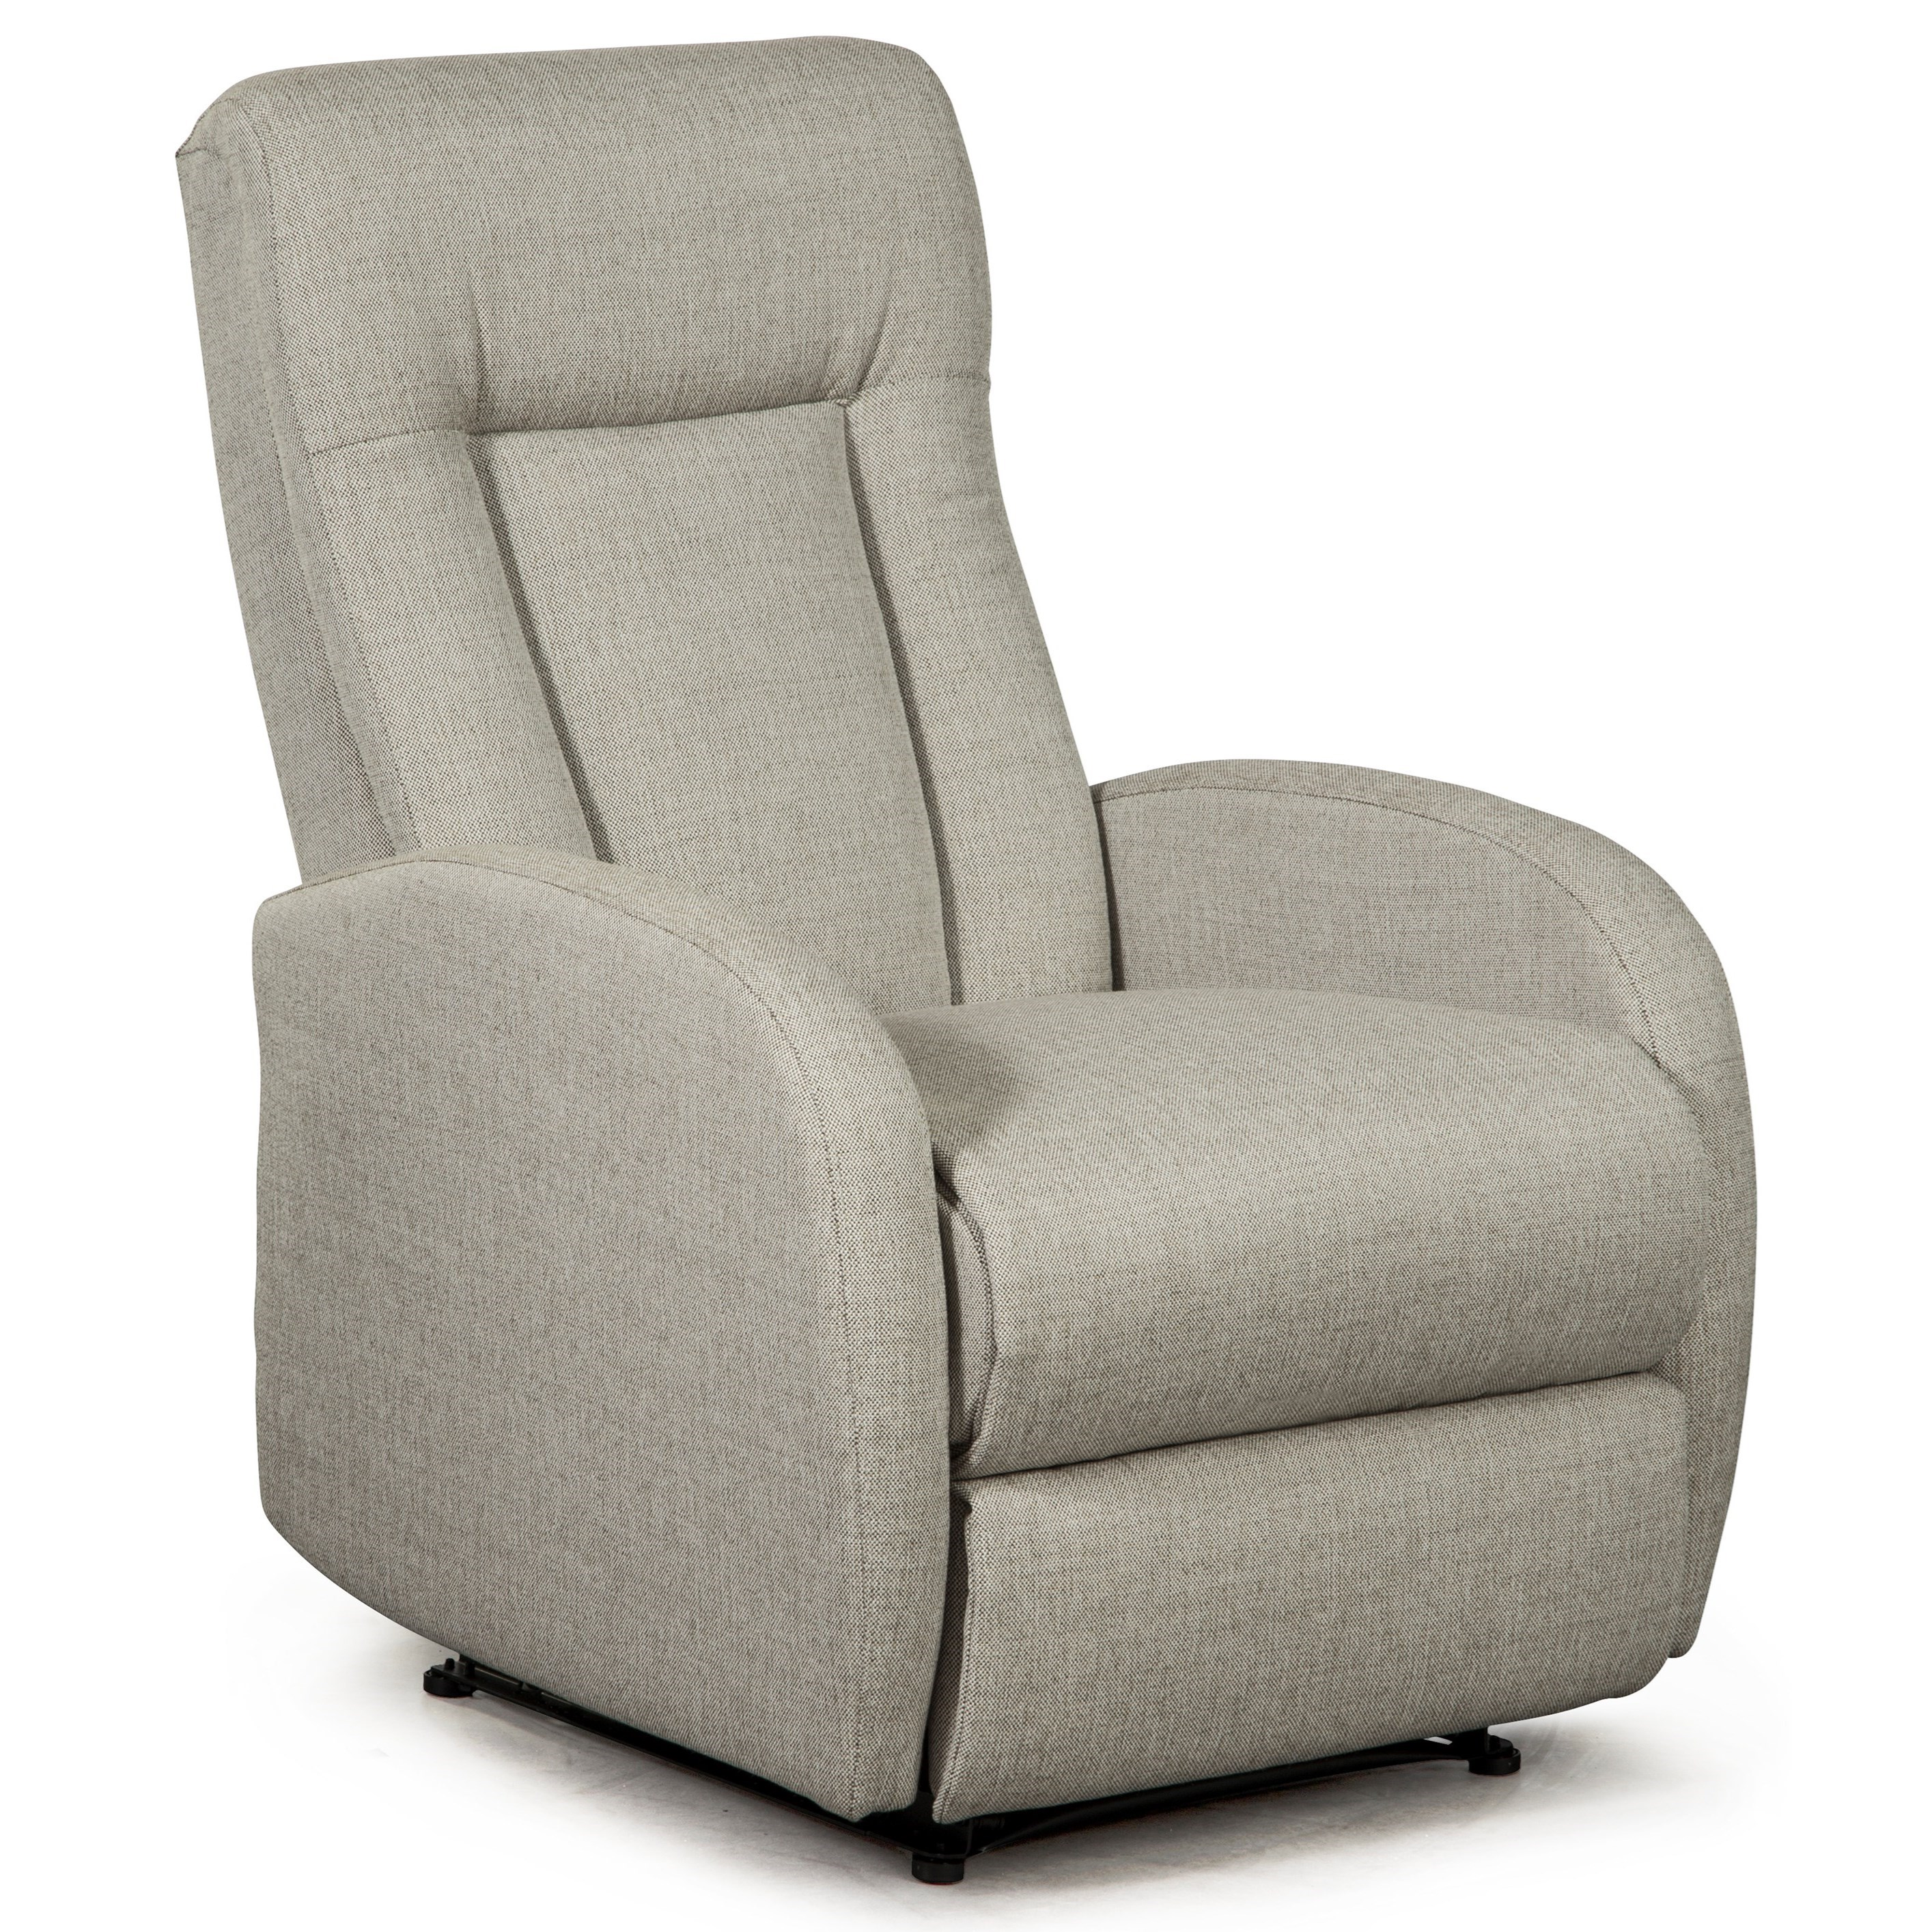 Space Saver Recliner w/ Inside Handle